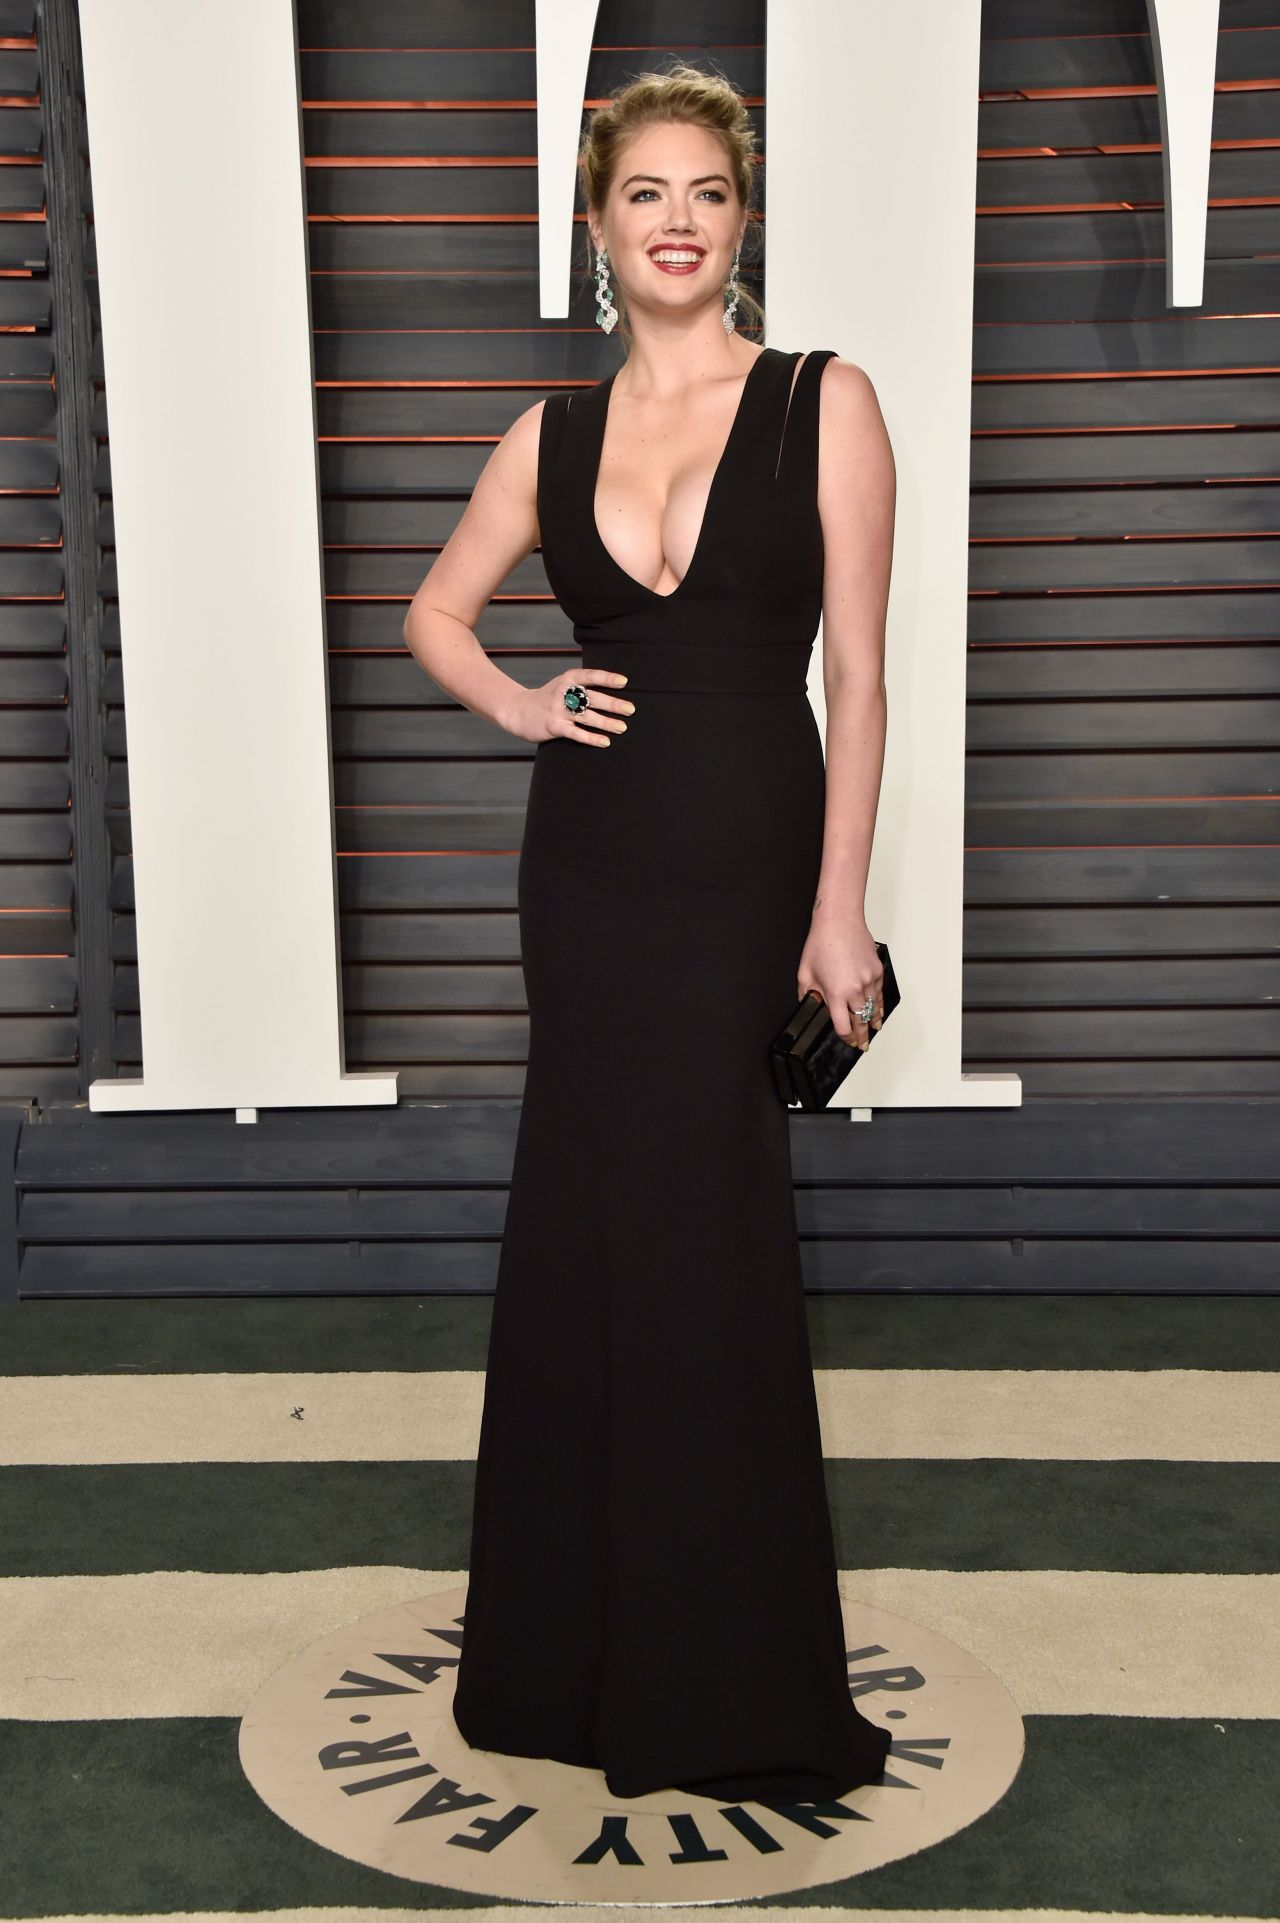 kate-upton-vanity-fair-oscar-2016-party-in-beverly-hills-ca-10